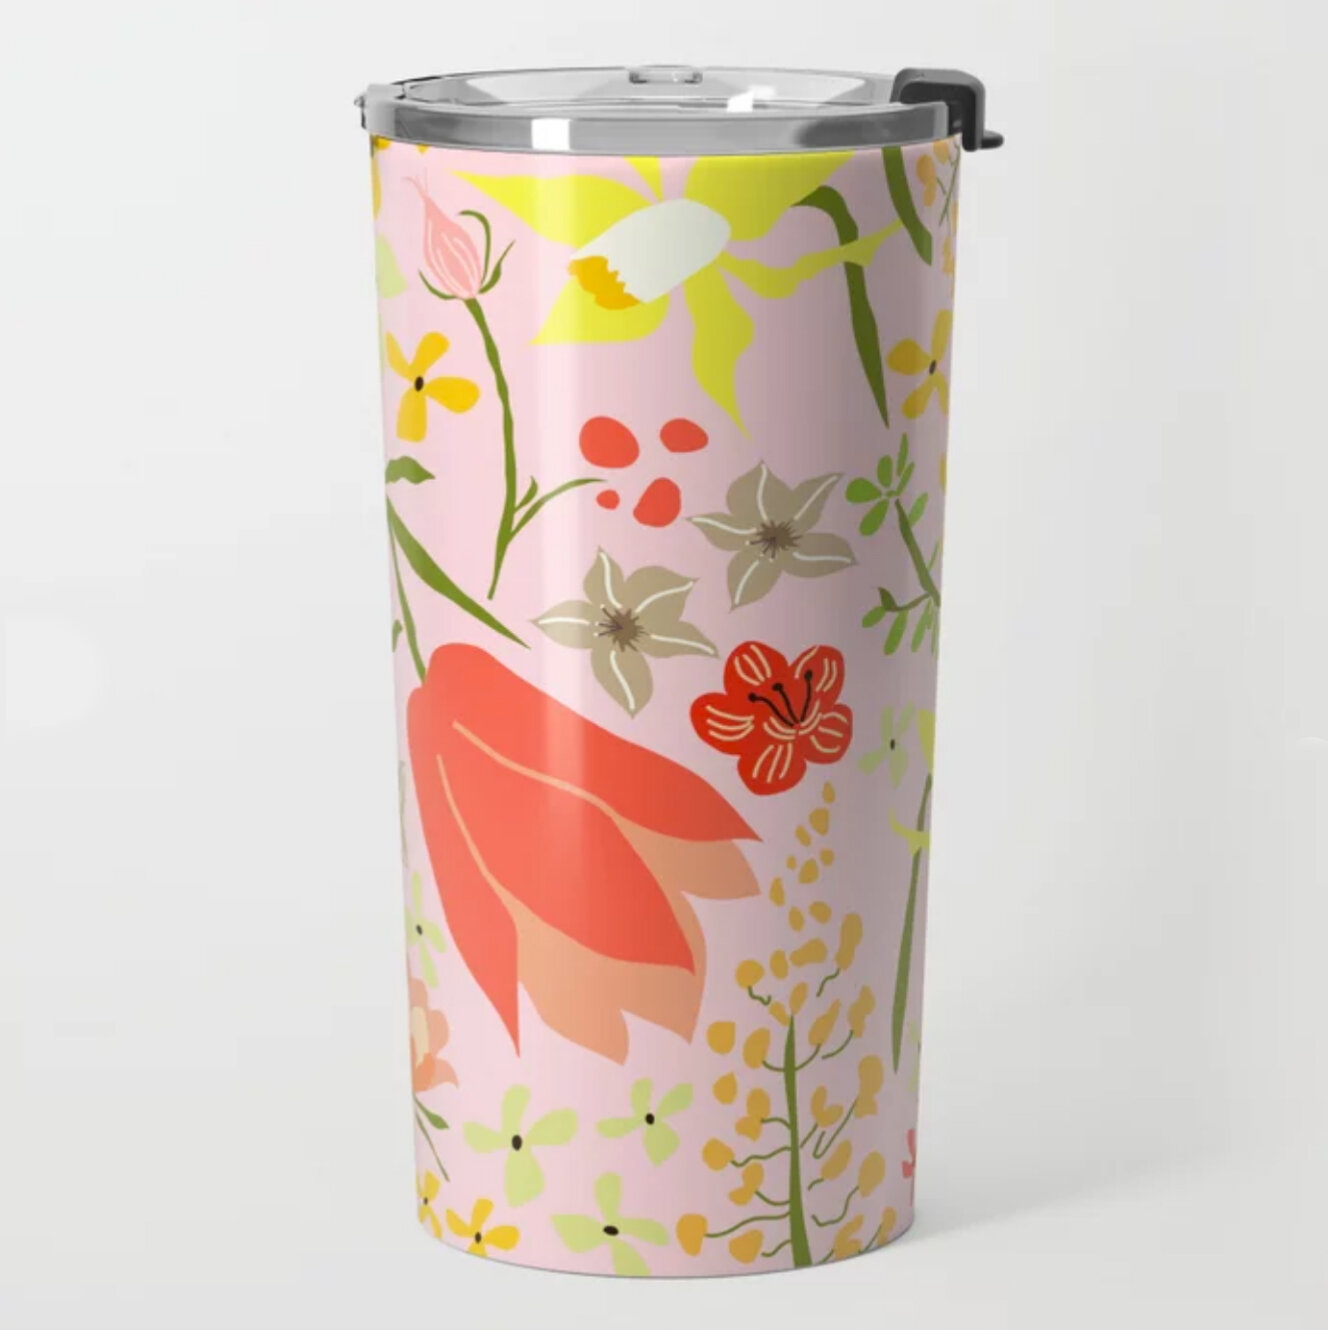 Wildflowers-pink-travelmug-gingerdeverell.jpg